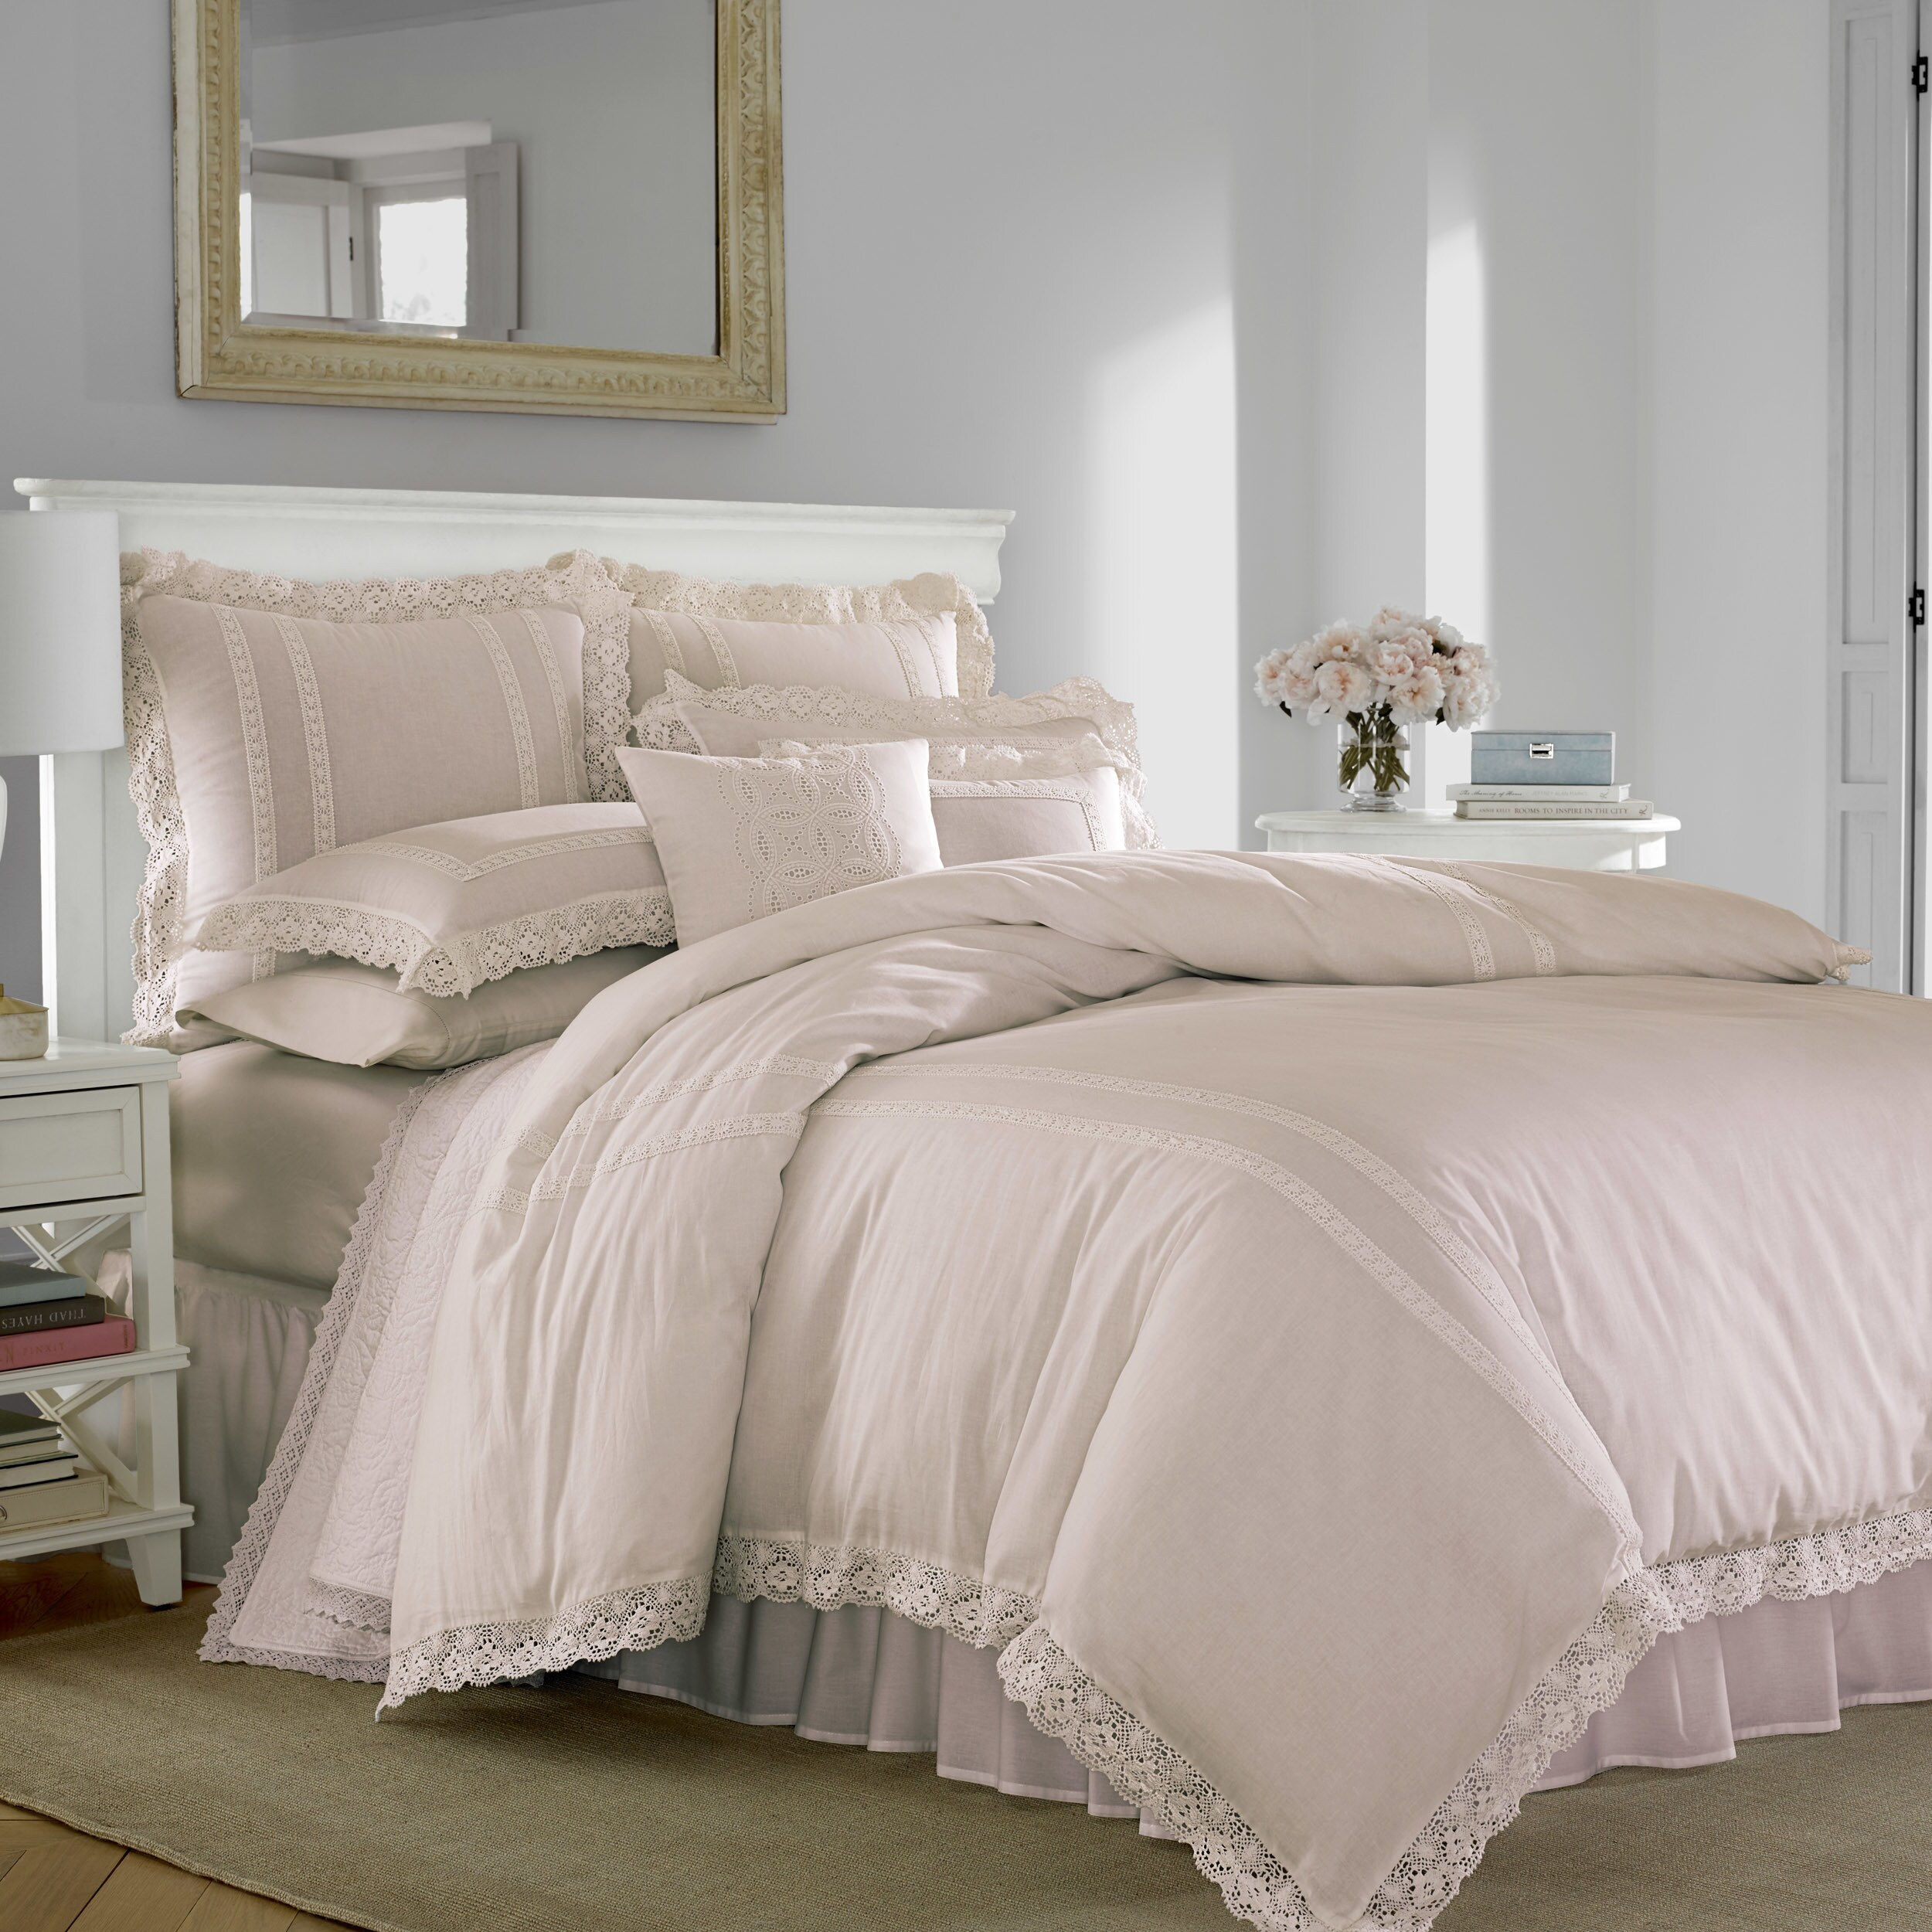 Pink Duvet Cover Laura Ashley Annabella Blush Pink Duvet Cover Set